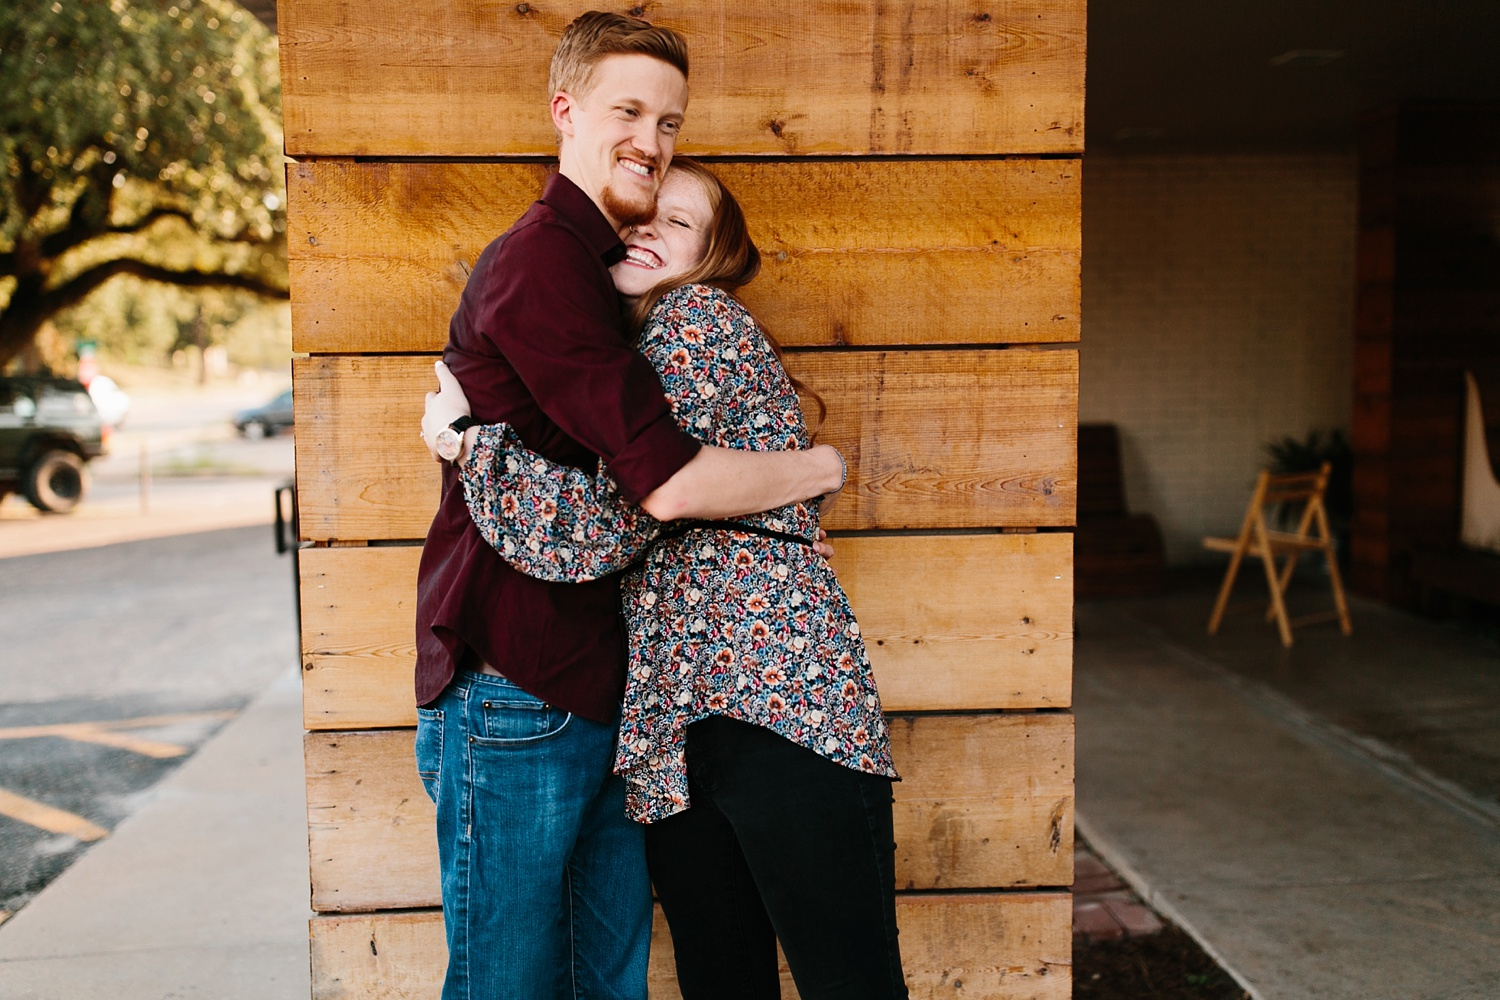 Kayla + Alex _ a joyful and loving engagement shoot in Waco, Texas by North Texas Wedding Photographer Rachel Meagan Photography _07